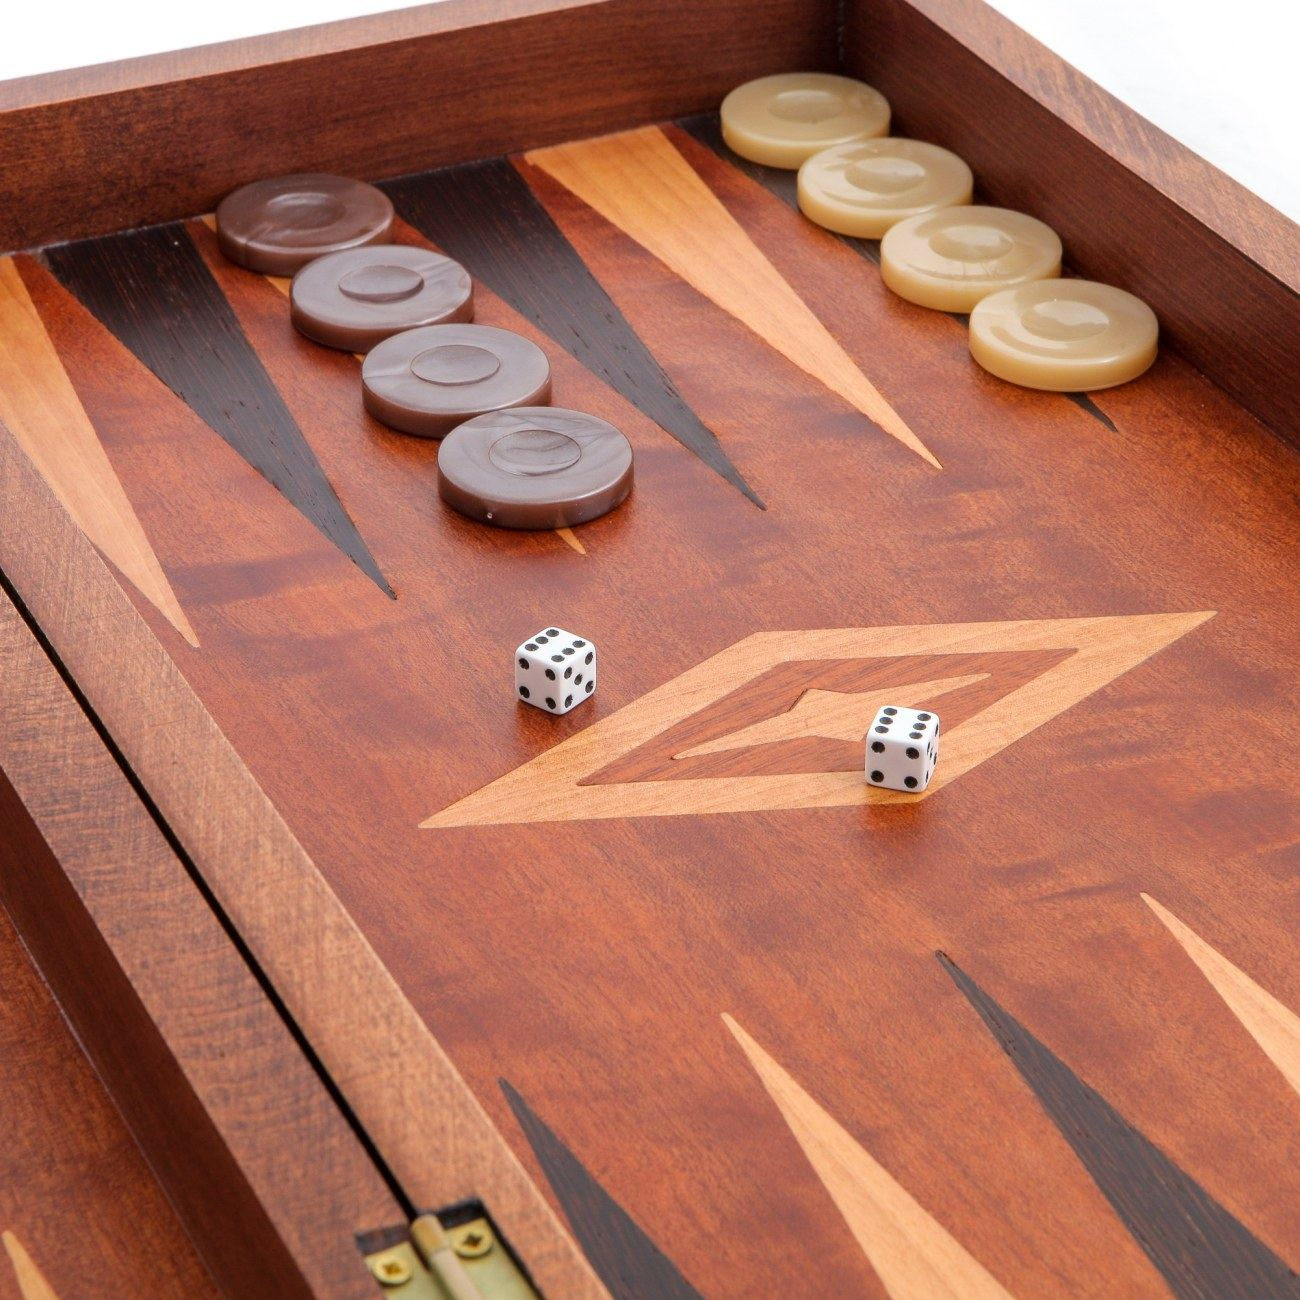 Handcrafted Games Wooden Handcrafted Sidebar Newlibrarygood